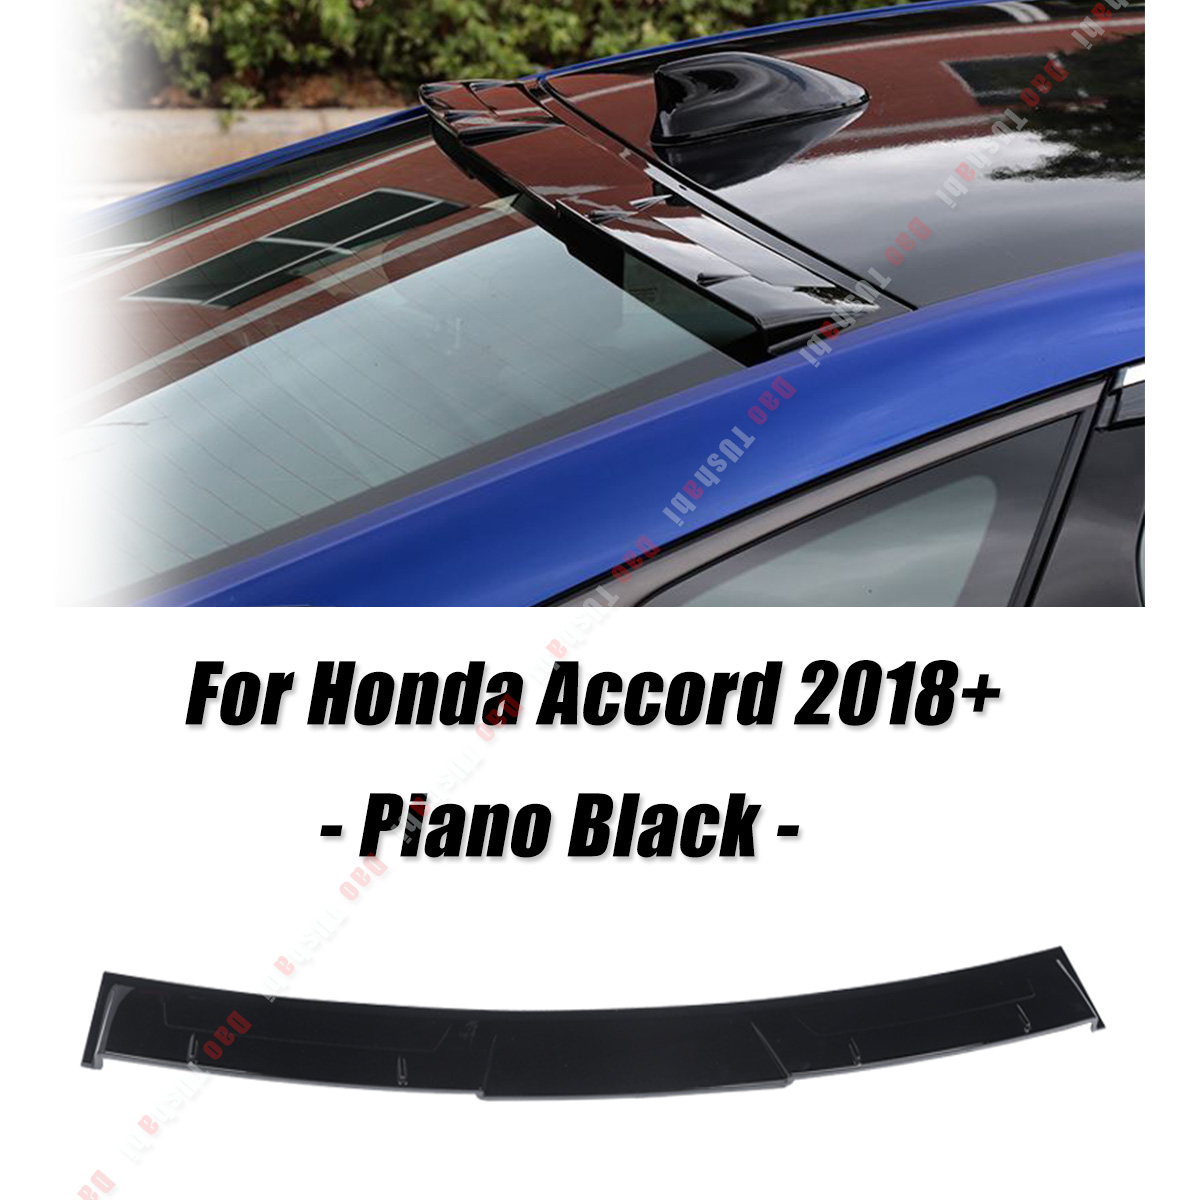 Piano Black For Honda For Accord 10th 2018 ABS Rear Window Visor Roof Spoiler Wings Auto PartPiano Black For Honda For Accord 10th 2018 ABS Rear Window Visor Roof Spoiler Wings Auto Part